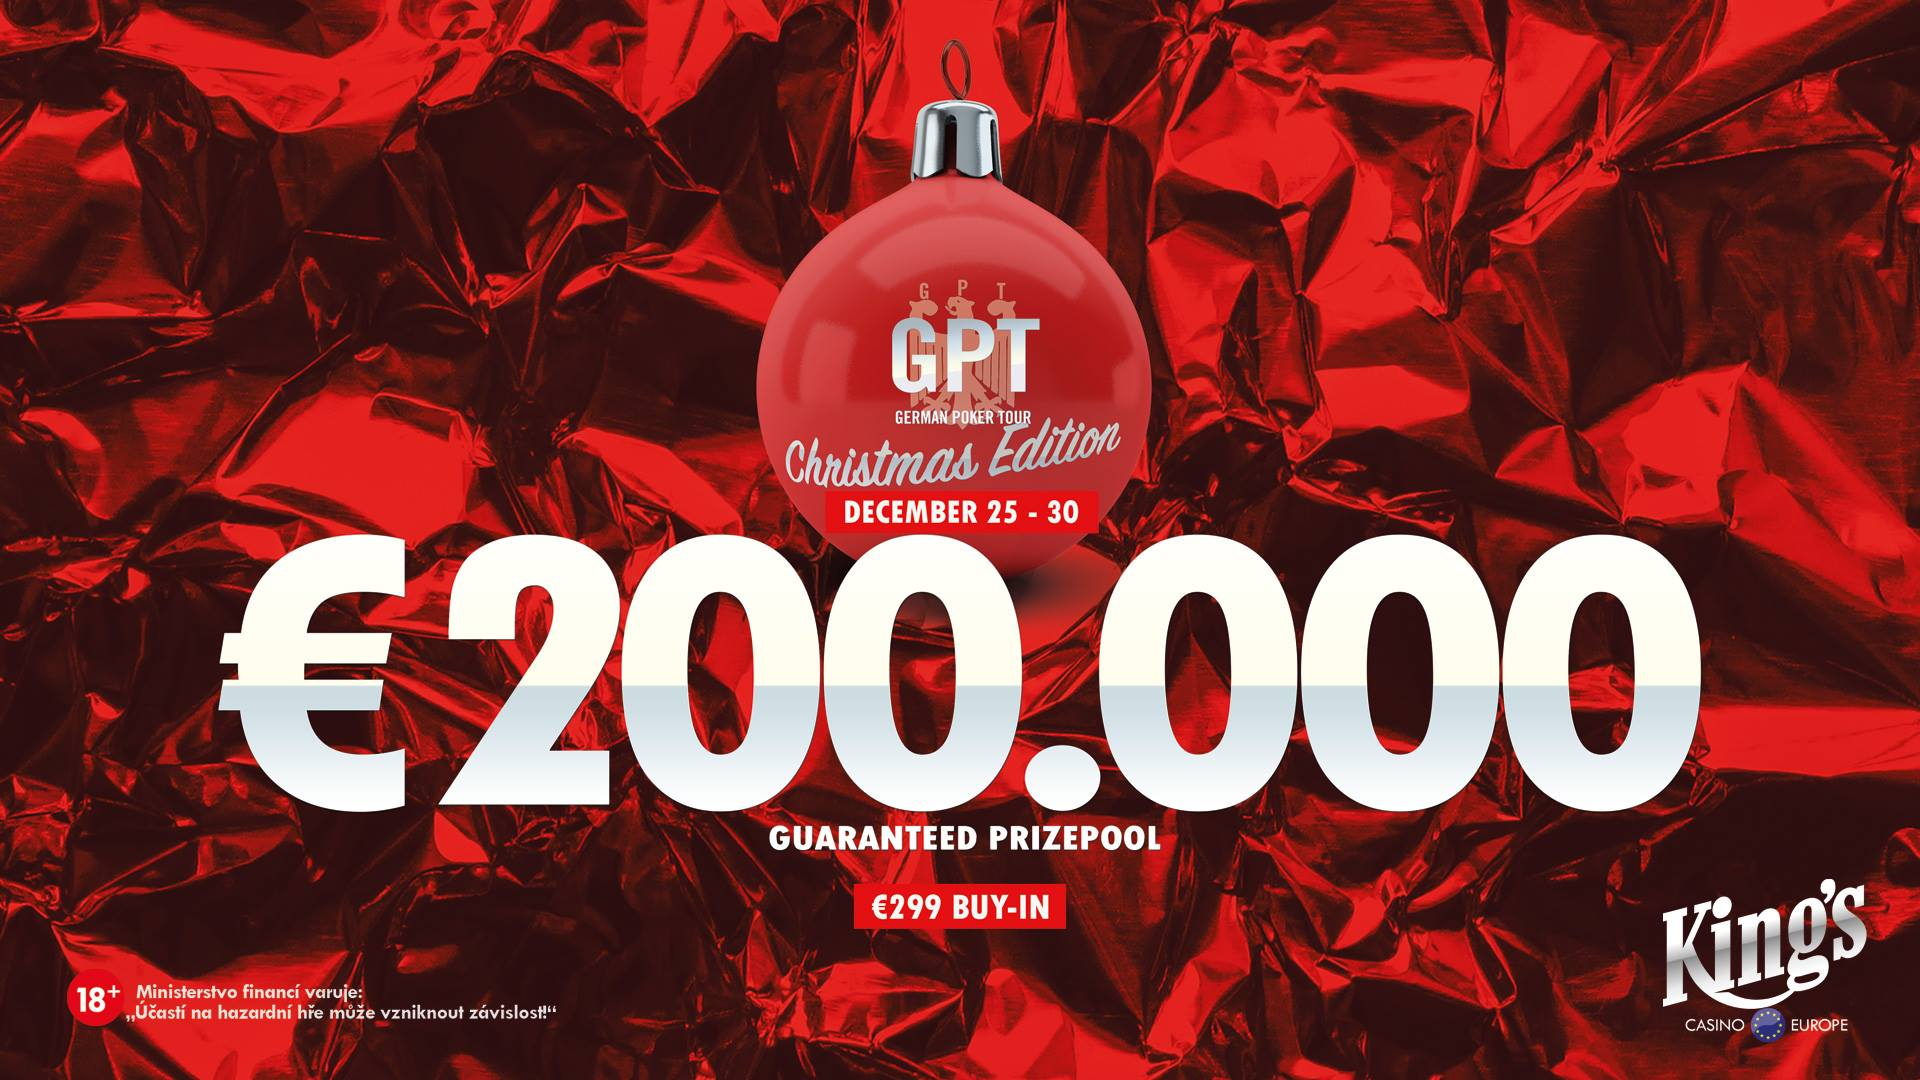 GPT Special Christmas Edition